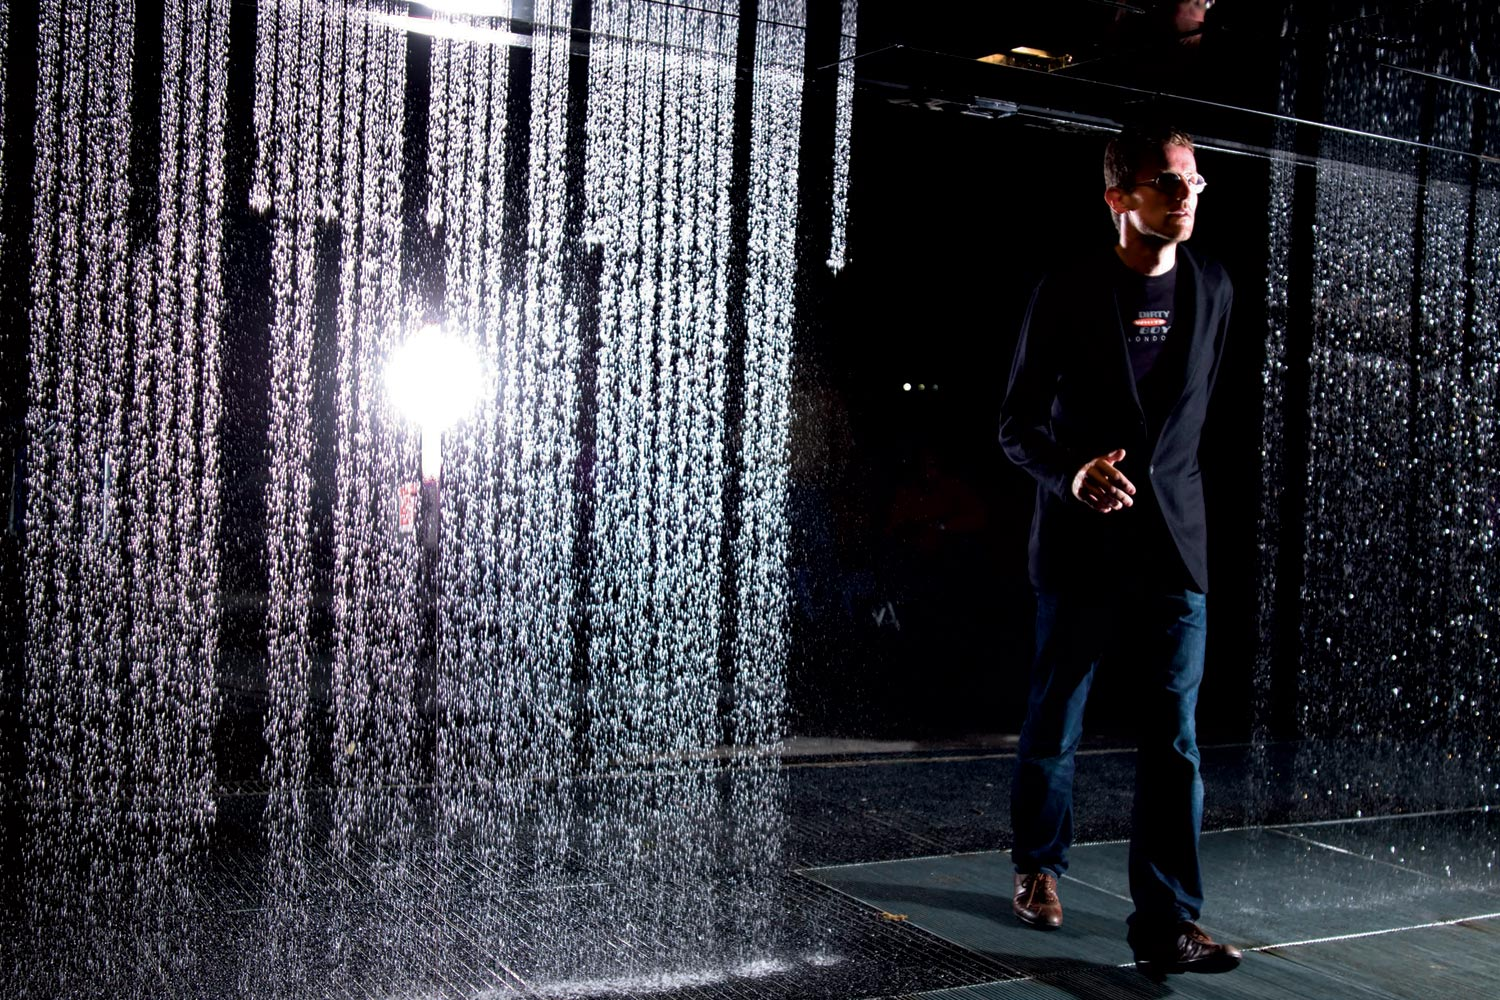 Carlo Ratti at one of his creations, the Digital Water Pavilion